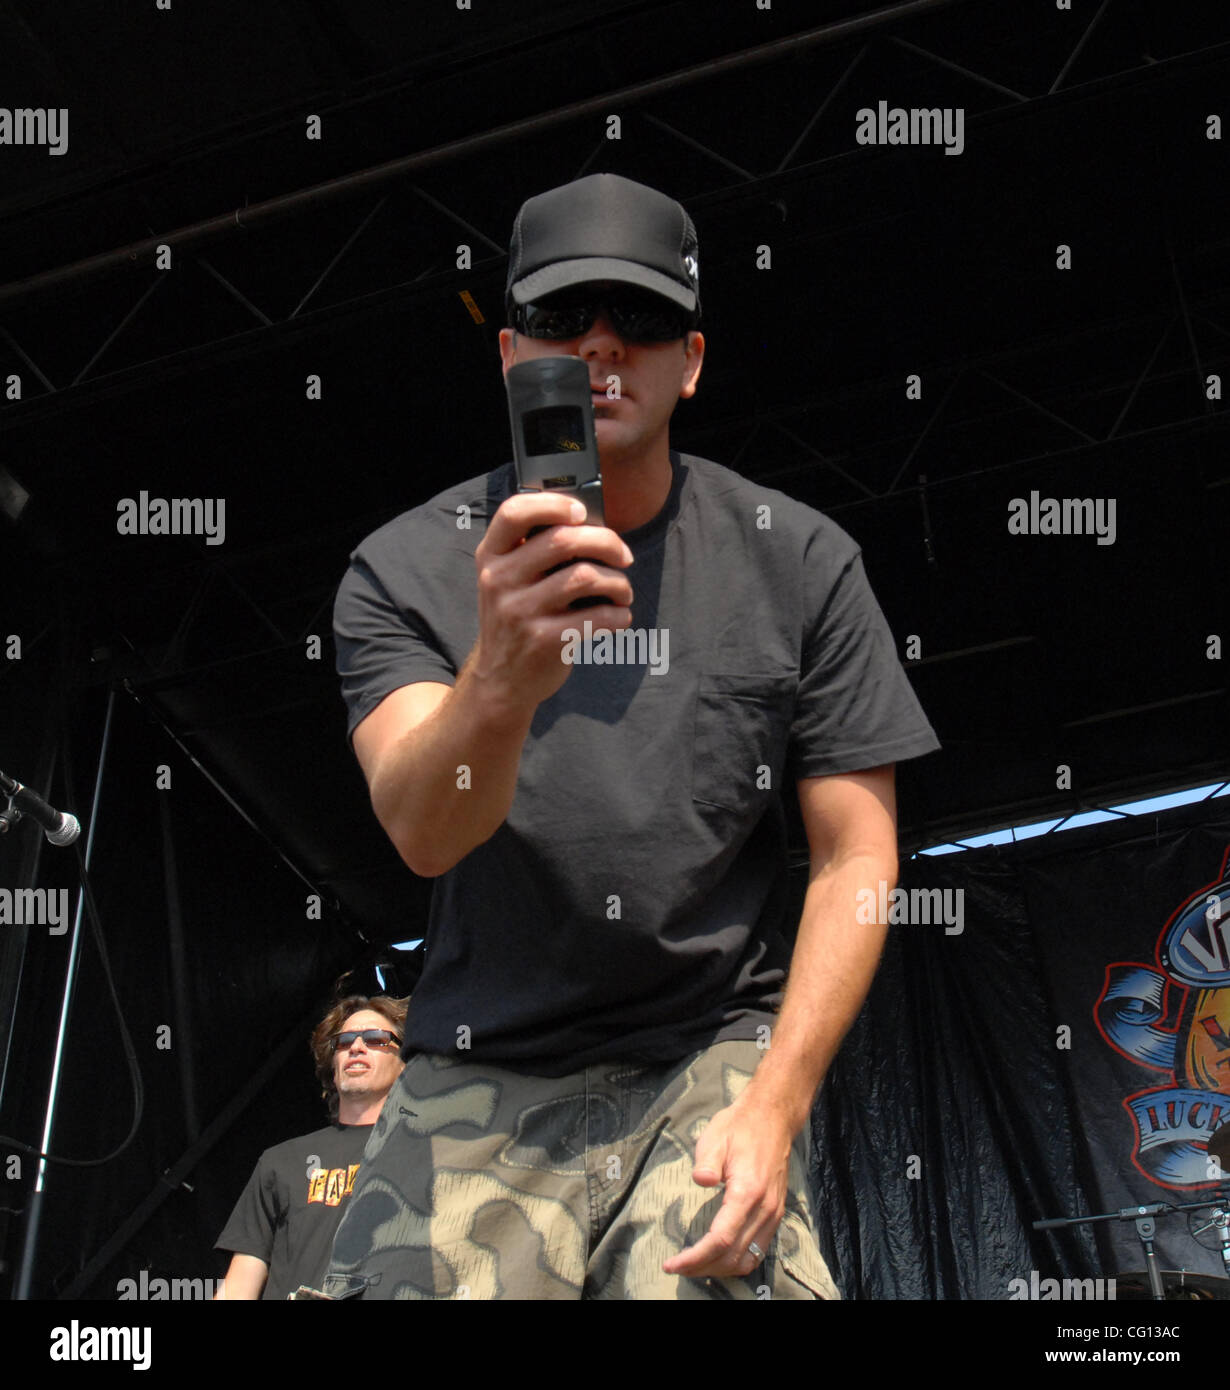 Jul. 23, 2007; Charlotte, NC USA; Singer JIM LINDBERG of the band PENNYWISE performs live as part of the 13th annual - Stock Image